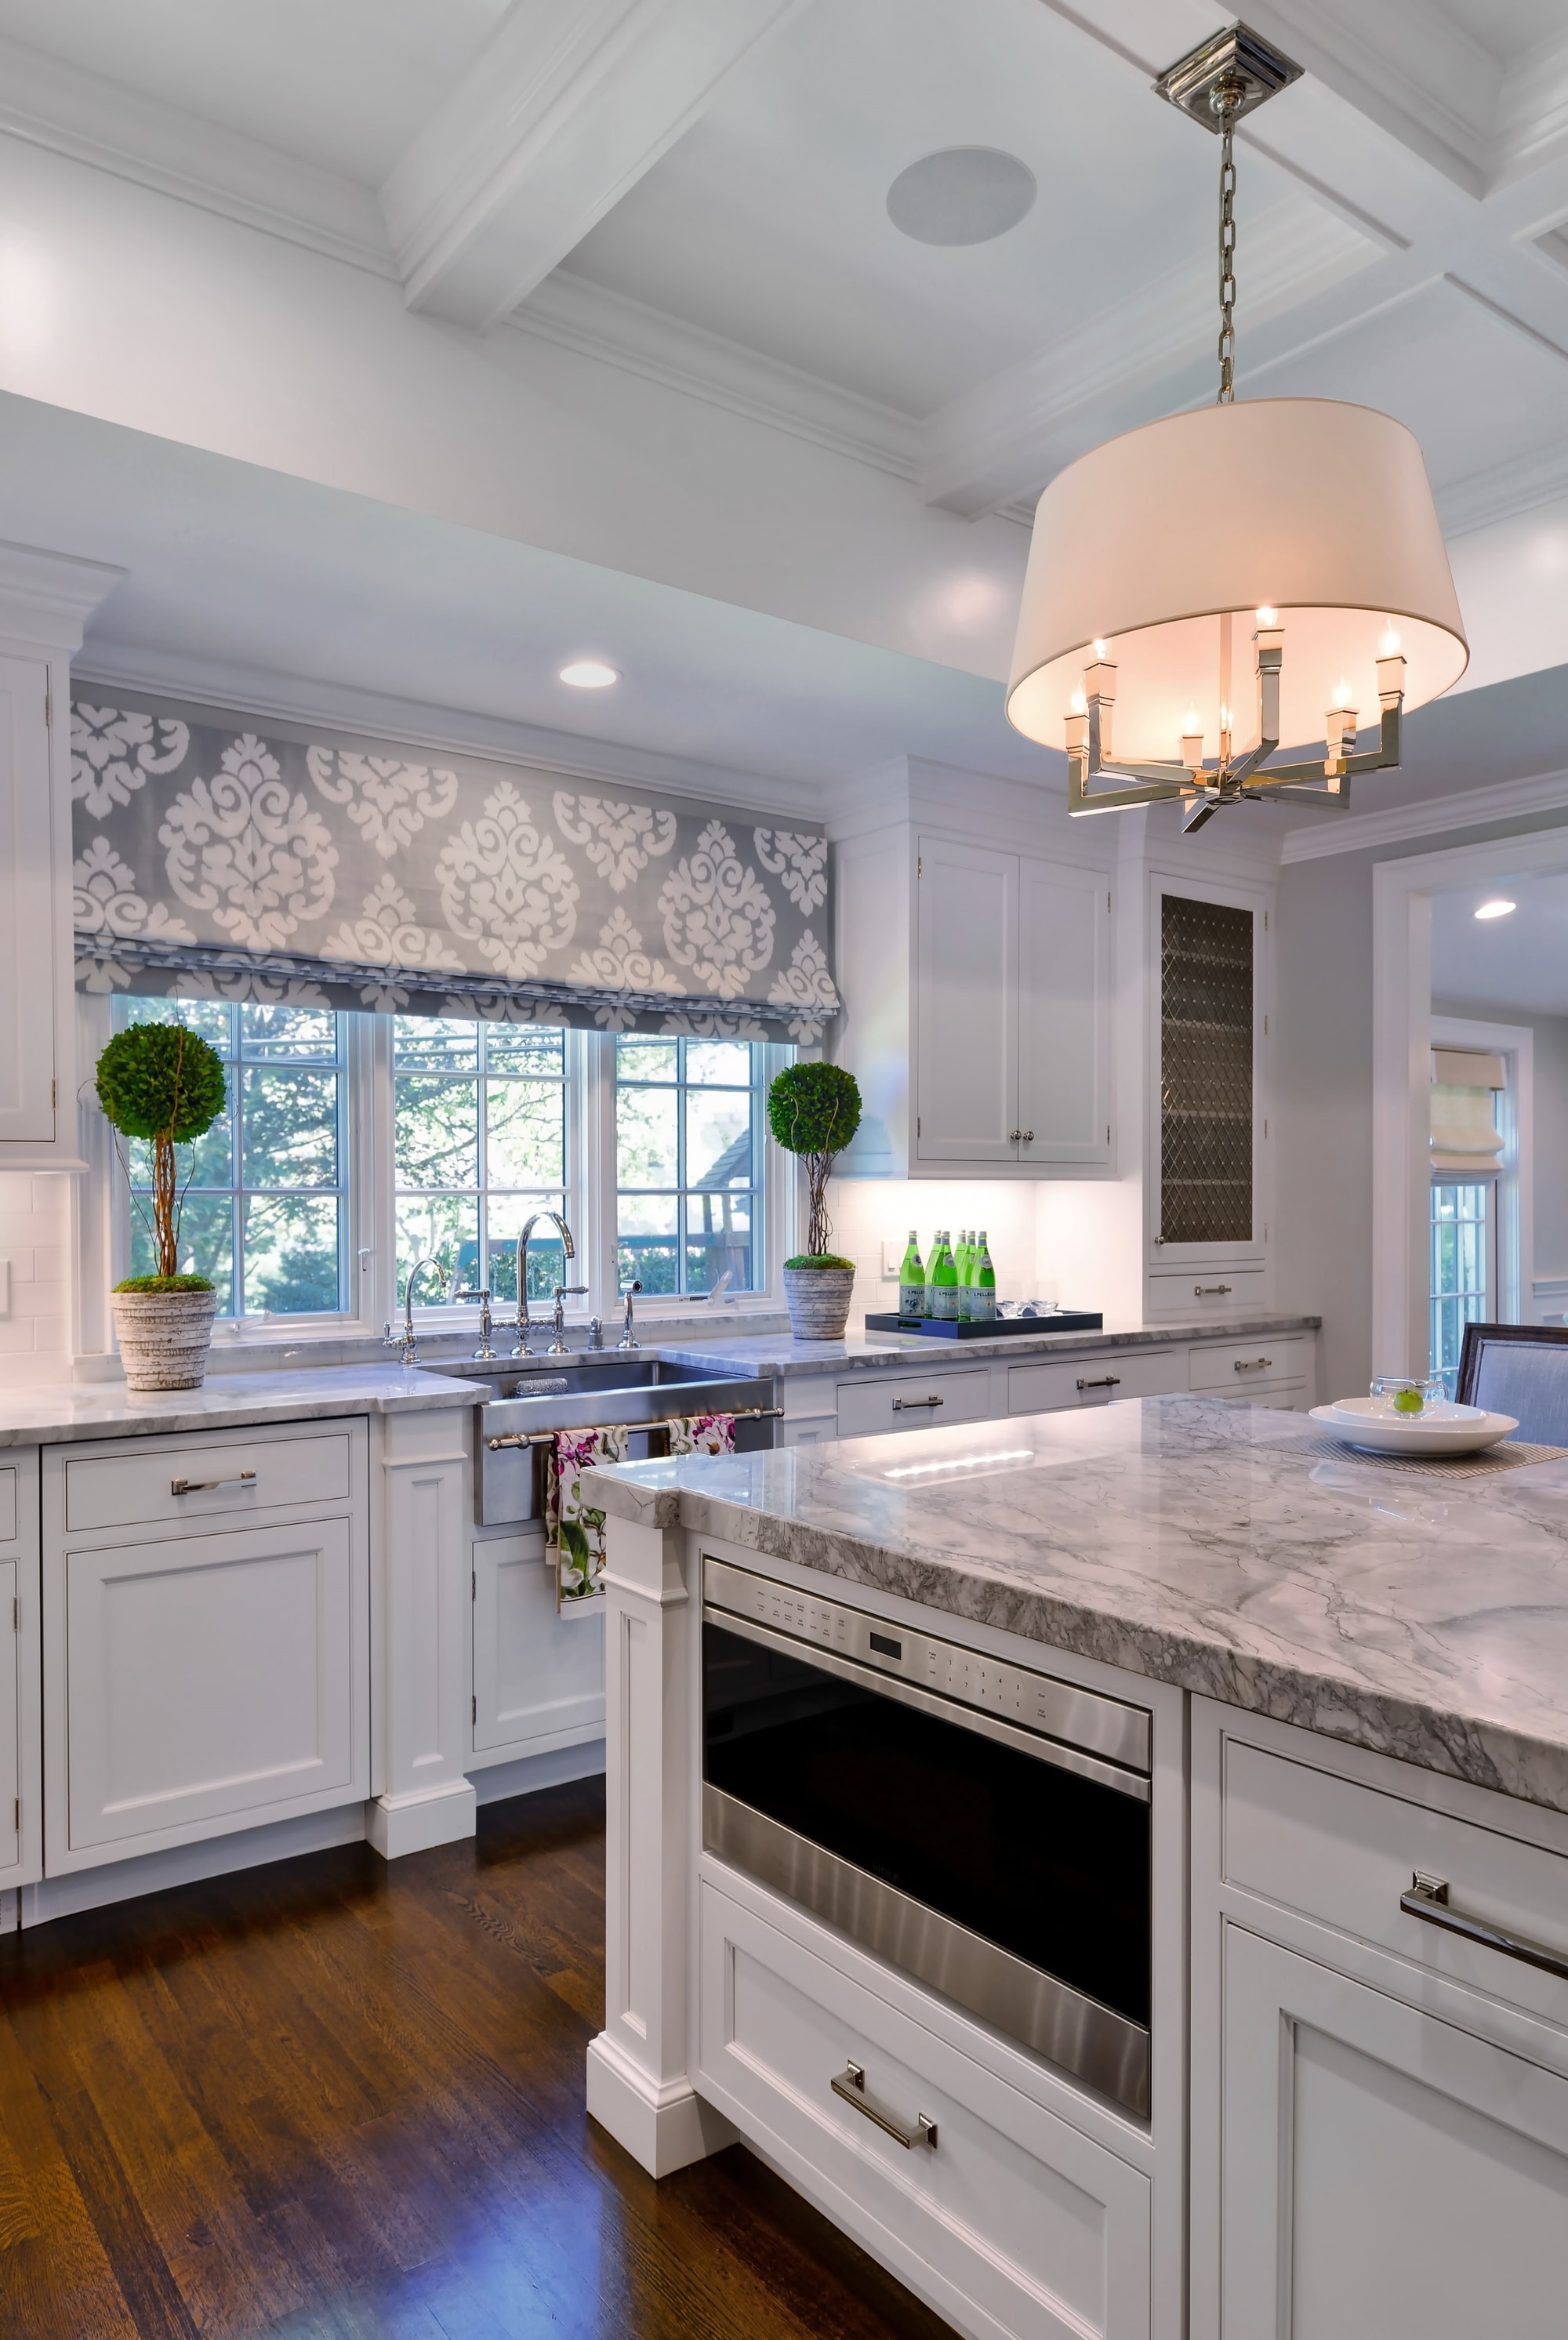 Transitional style kitchen with bay window